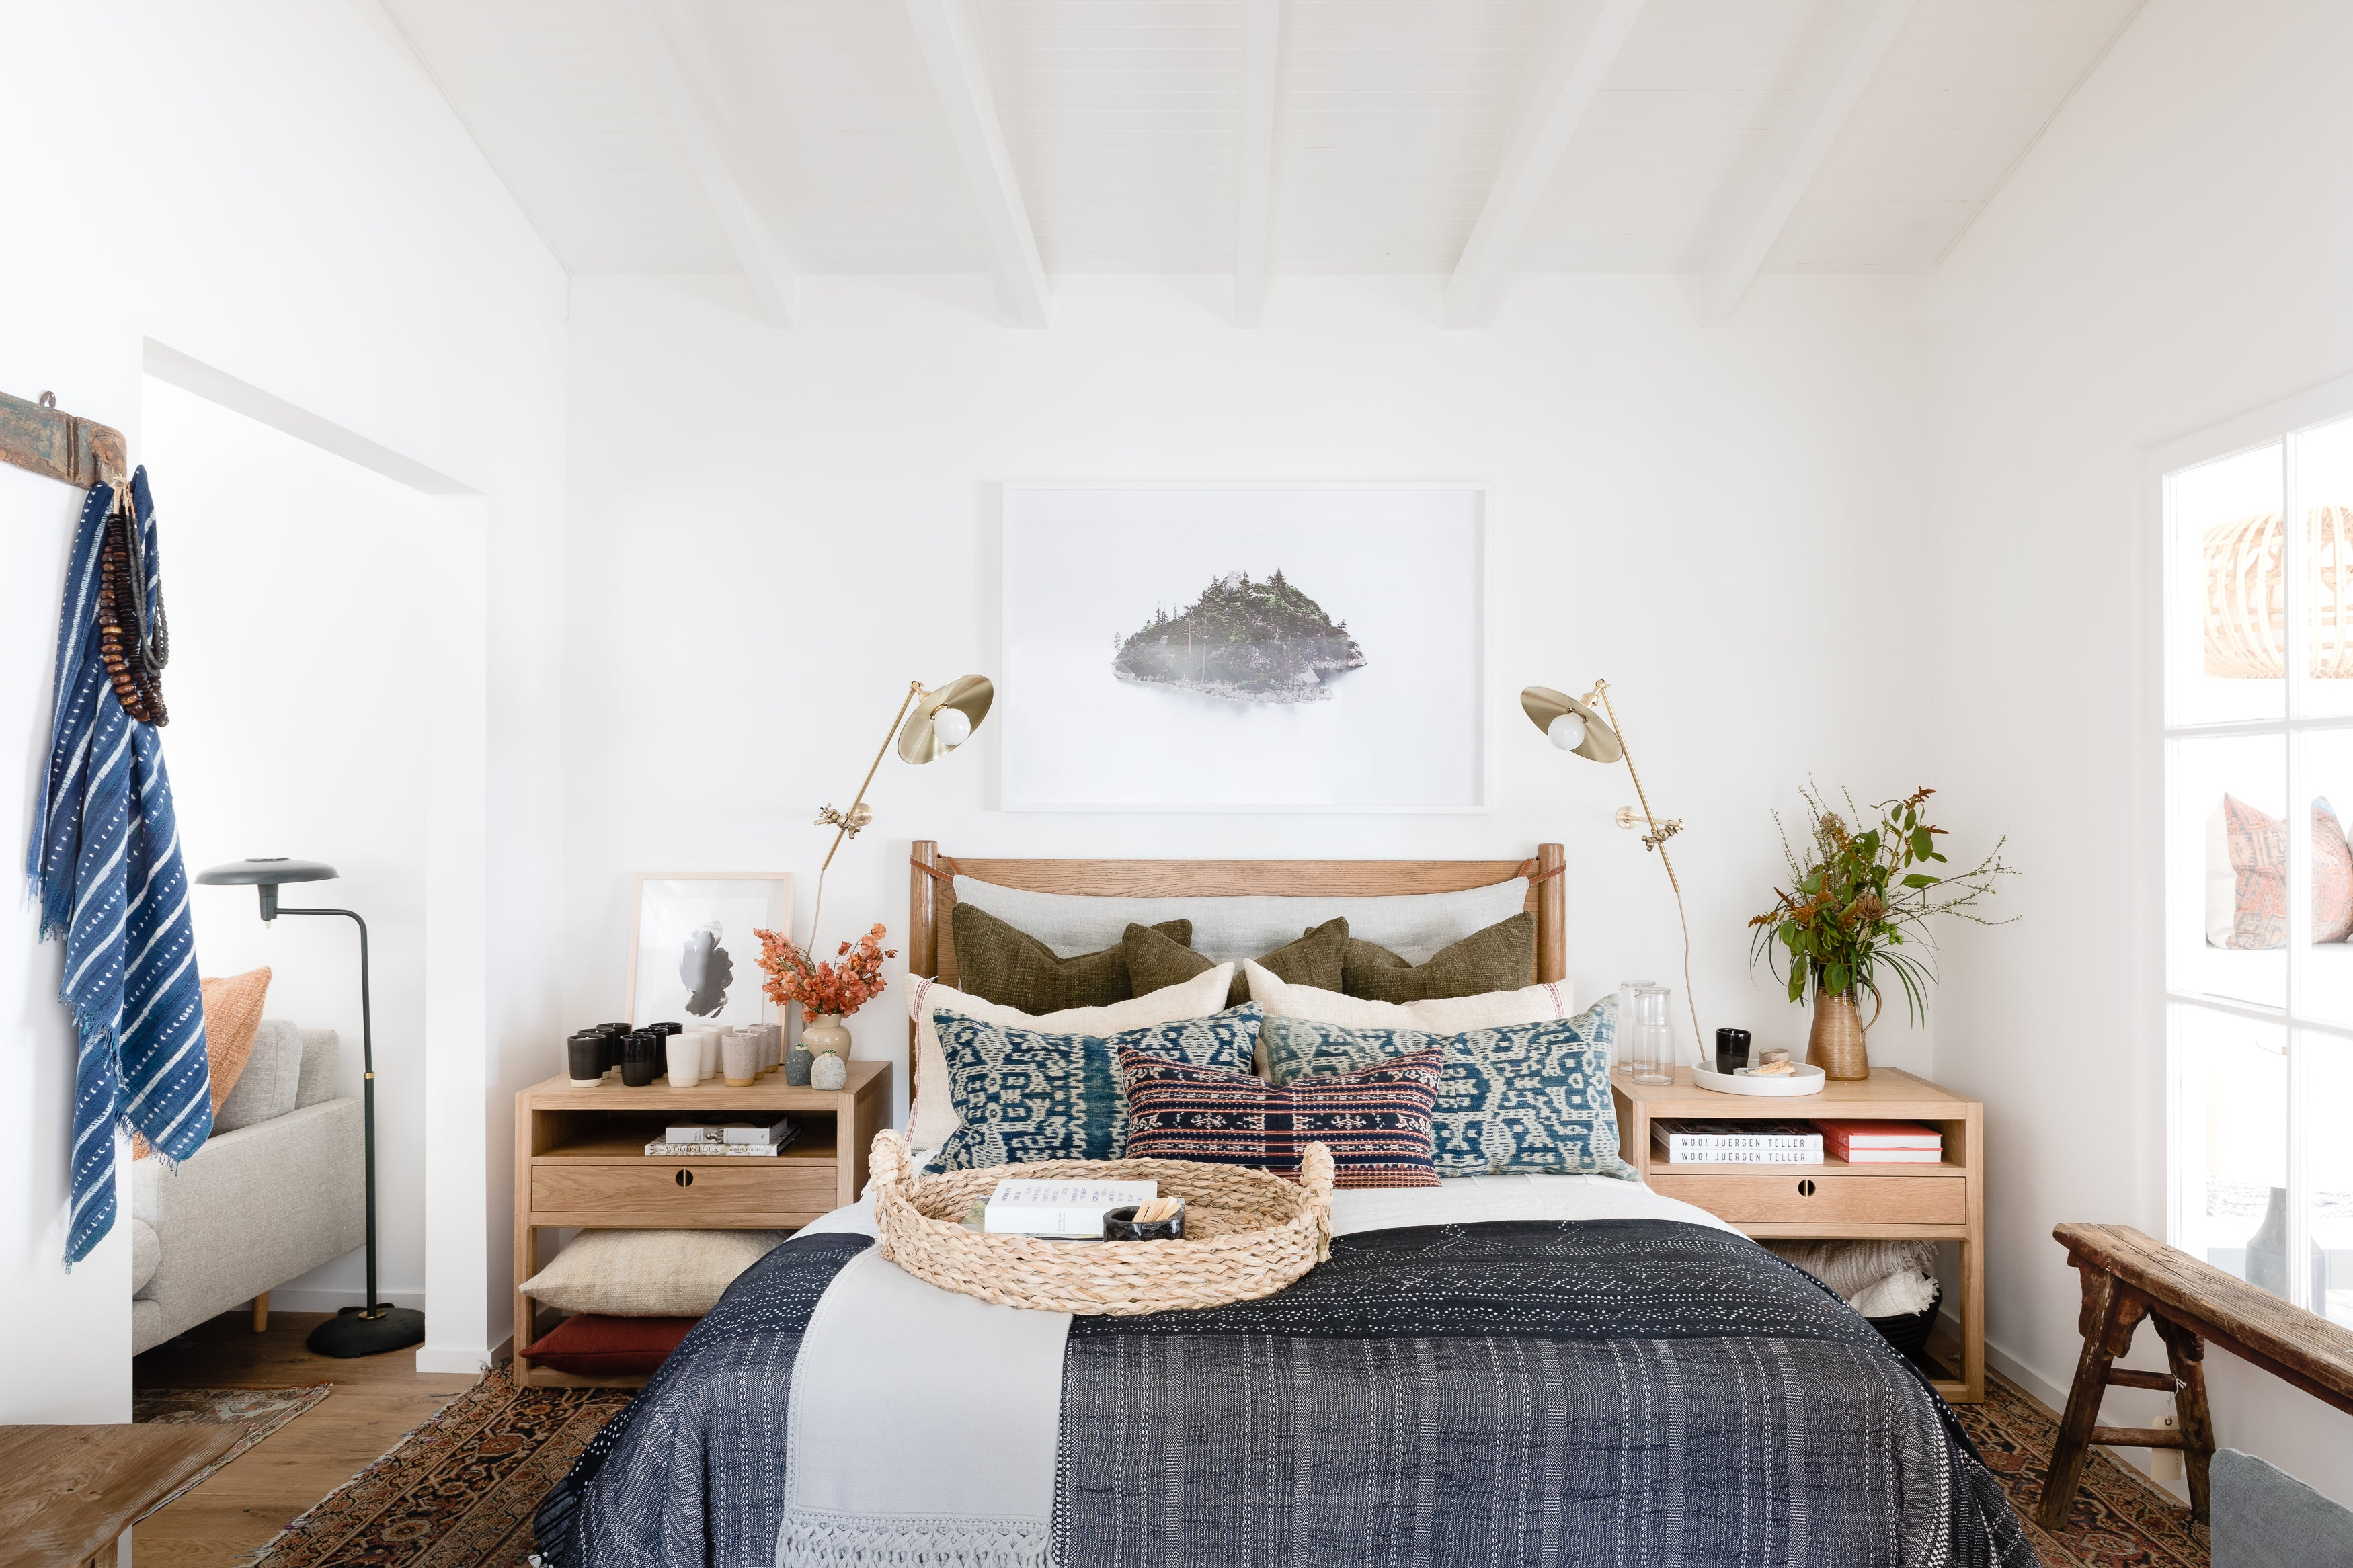 Shoppe By Amber Interiors   Curated Home Goods, Pillows, Rugs And More U2013  Shoppe Amber Interiors